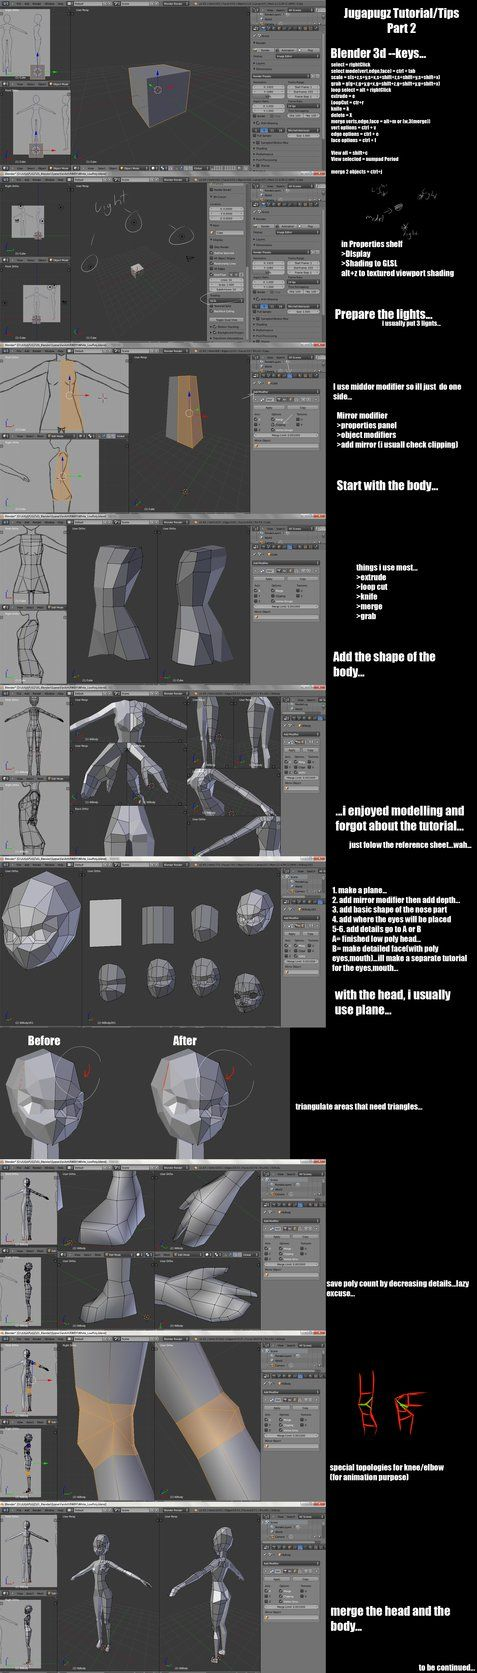 Jugapugz 3d lowpoly character Tutorial/Tip Part 2 by jugapugz on DeviantArt